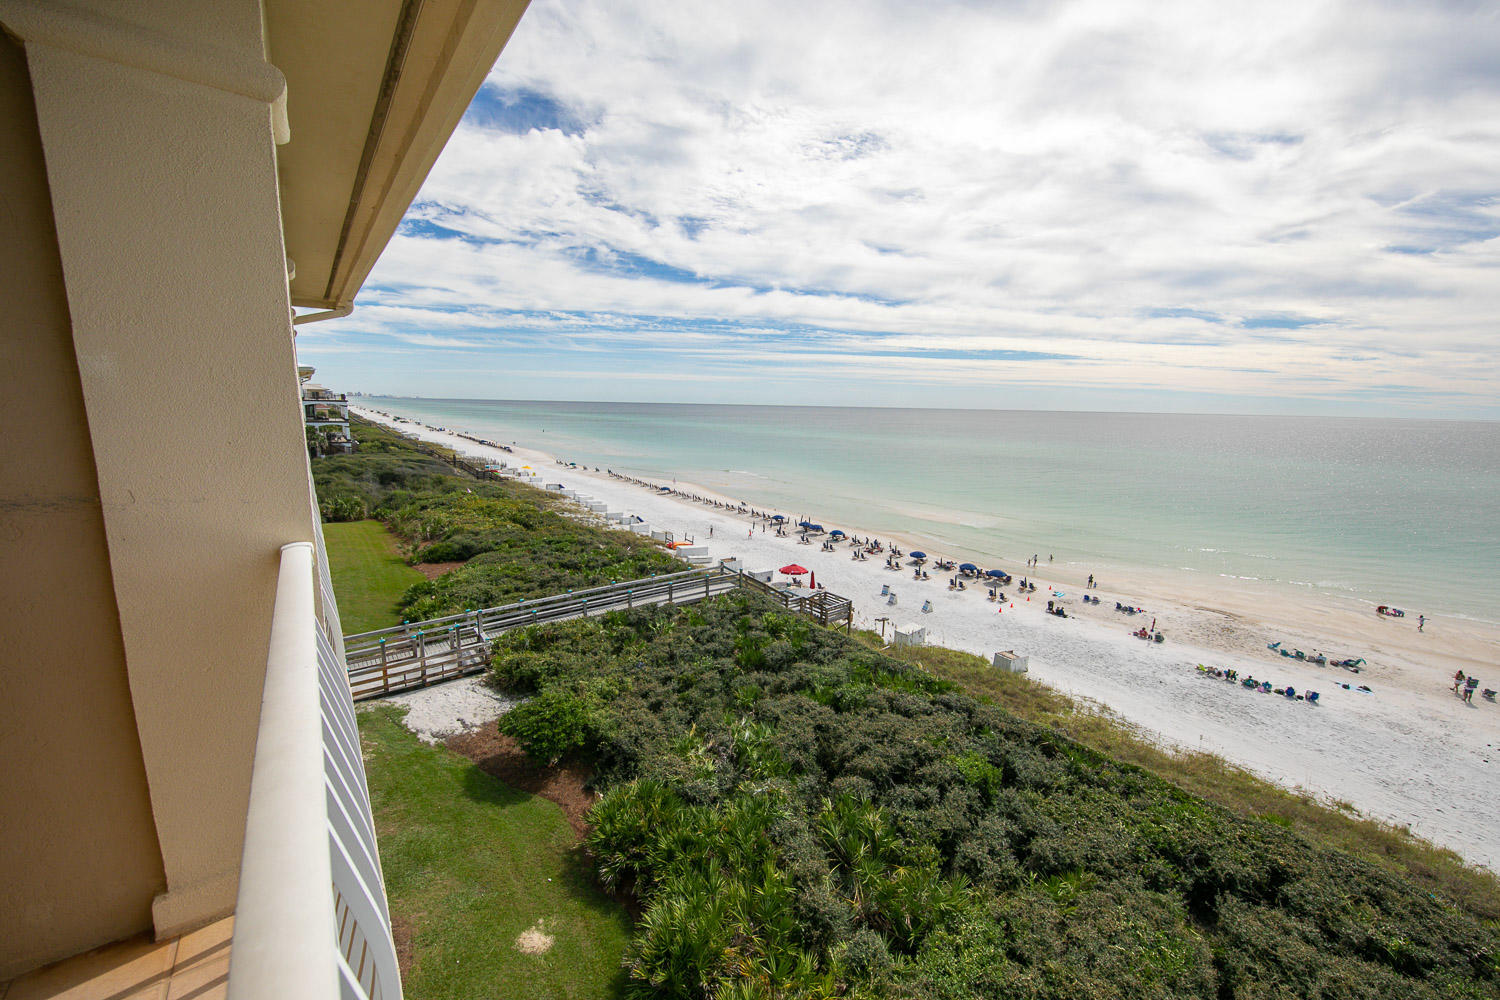 LOCATION LOCATION!!  This top floor Gulf front unit has spectacular Gulf Views and is located in the